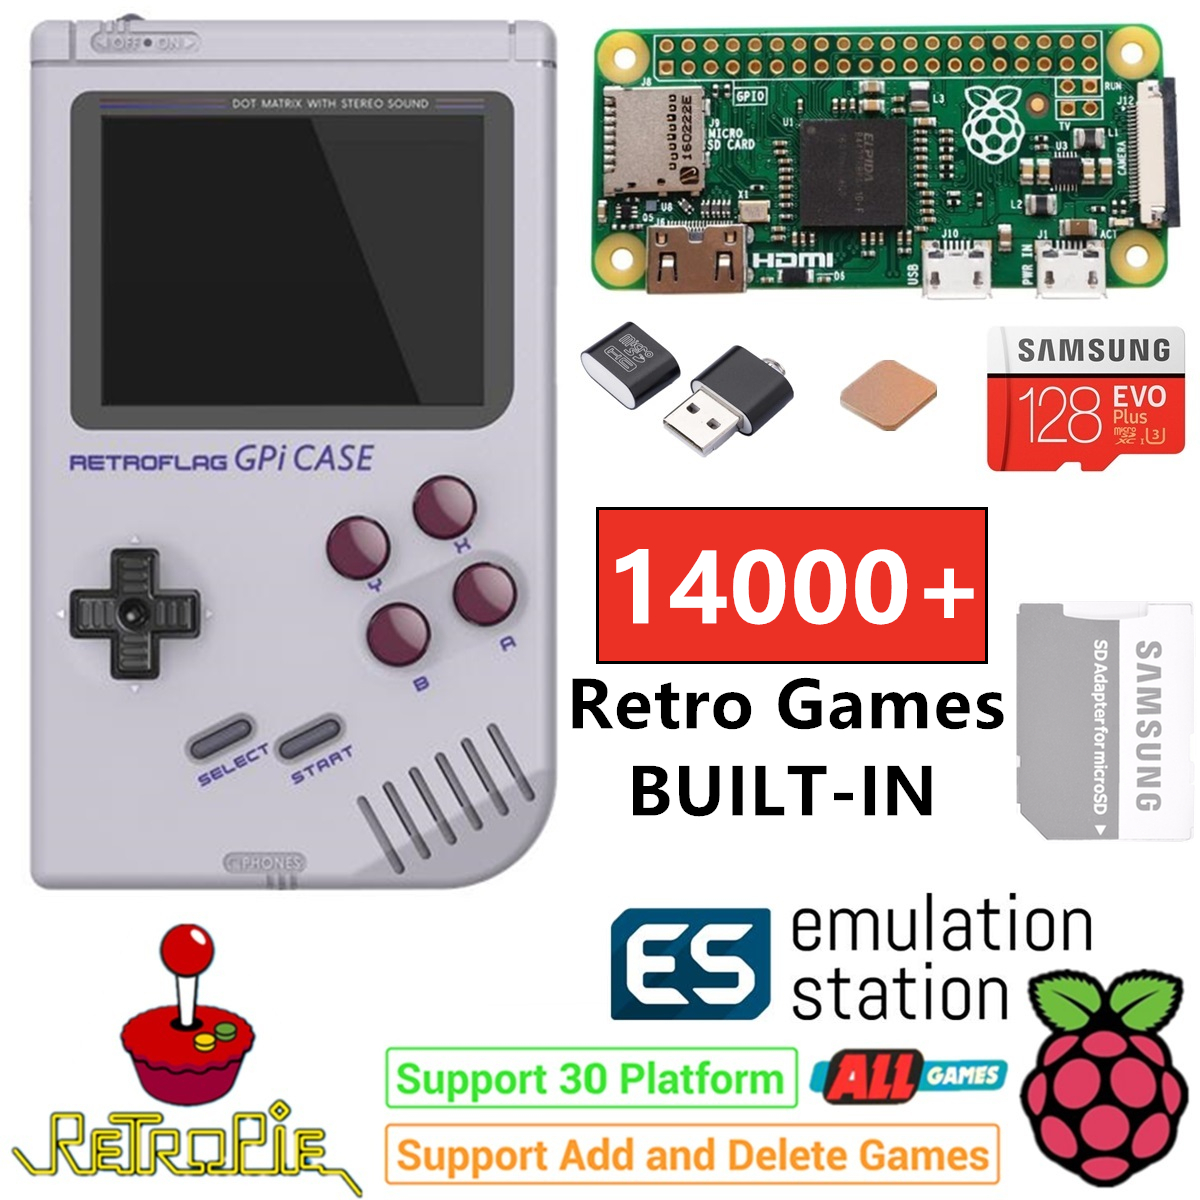 Raspberry Pi Zero Handheld Game Console GPi Case Safe Shutdown 128GB 14000+ Games Customized ES Retropie Emulation Game Station